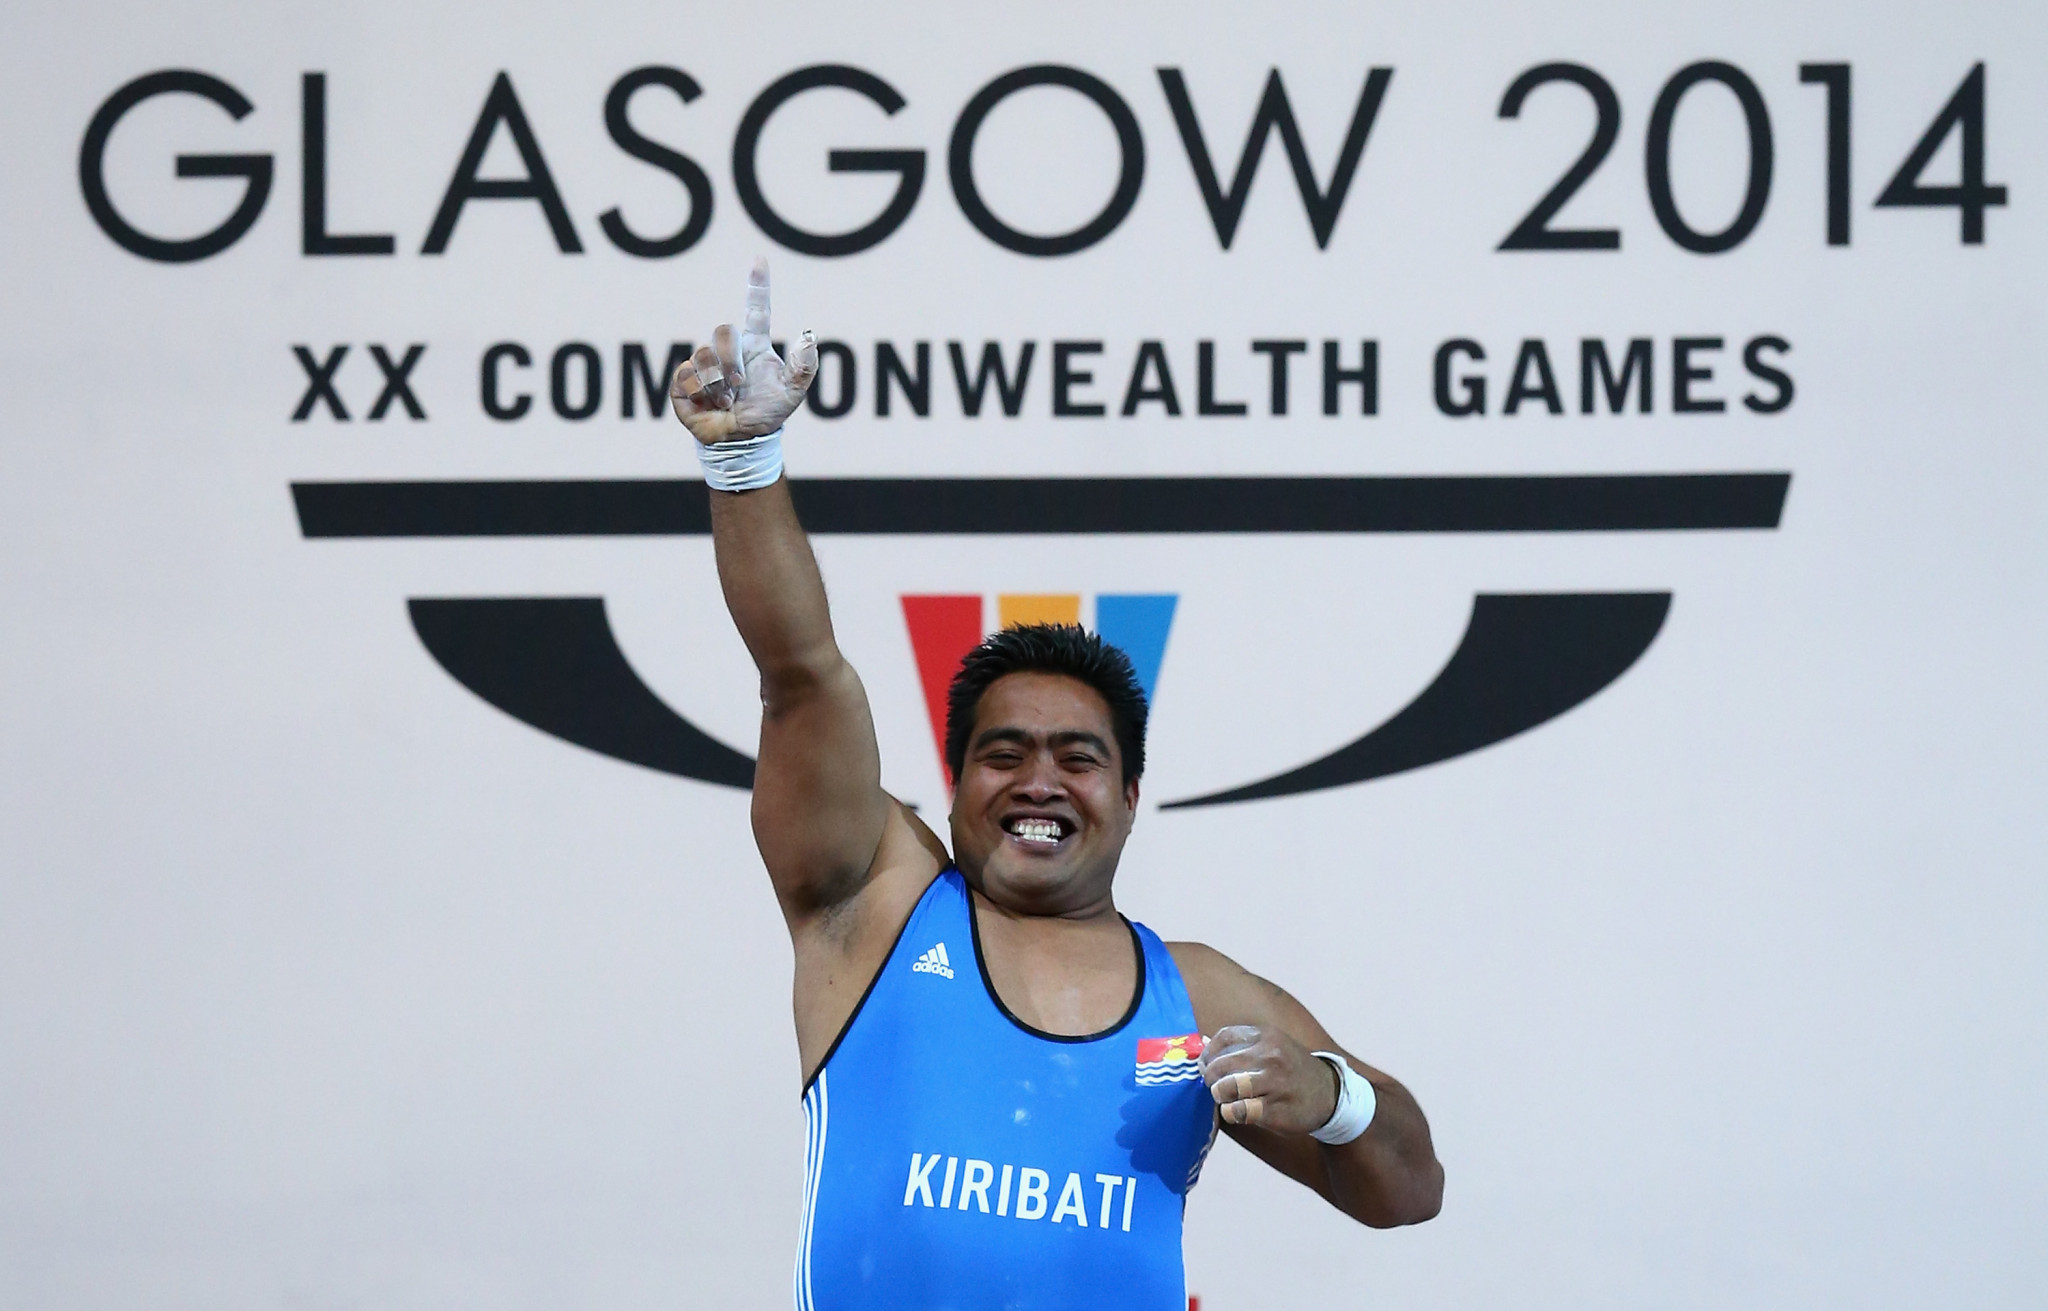 Weightlifter David Katoatau became Kiribati's first Commonwealth champion in 2014 ©Getty Images